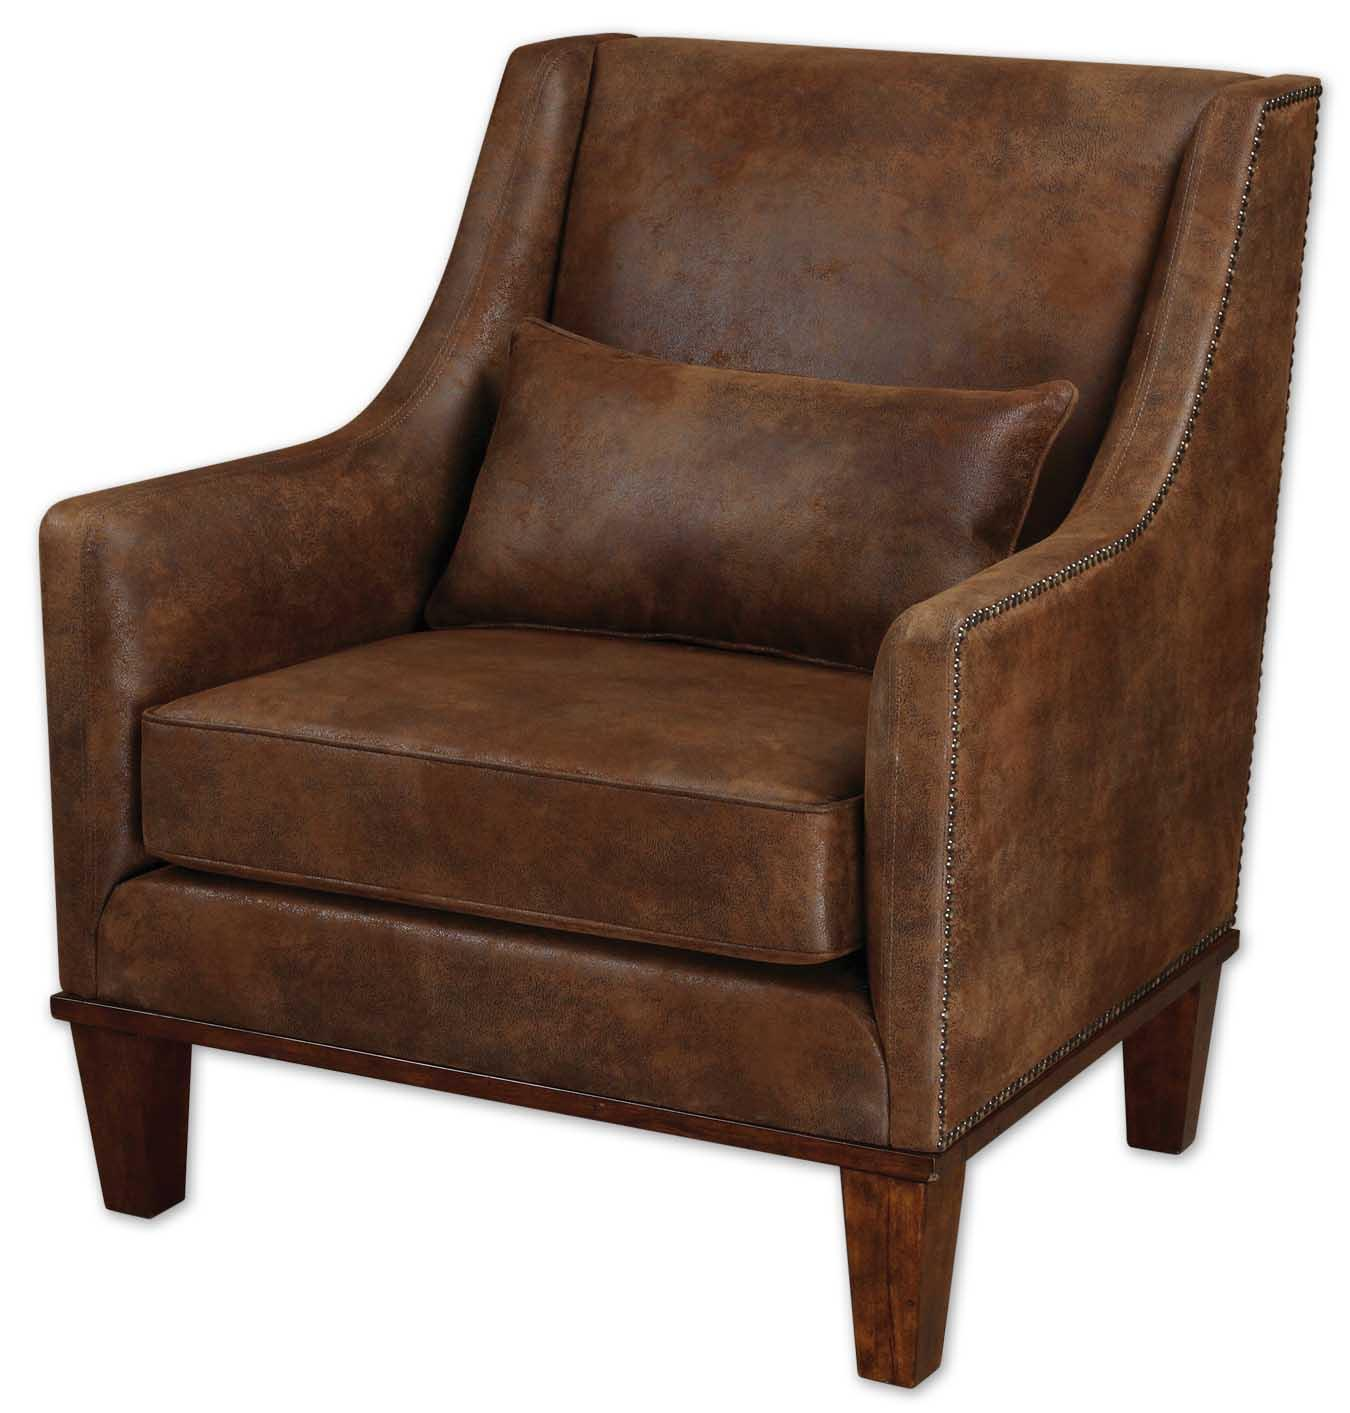 Accent Furniture - Accent Chairs Clay Armchair by Uttermost at Goffena Furniture & Mattress Center